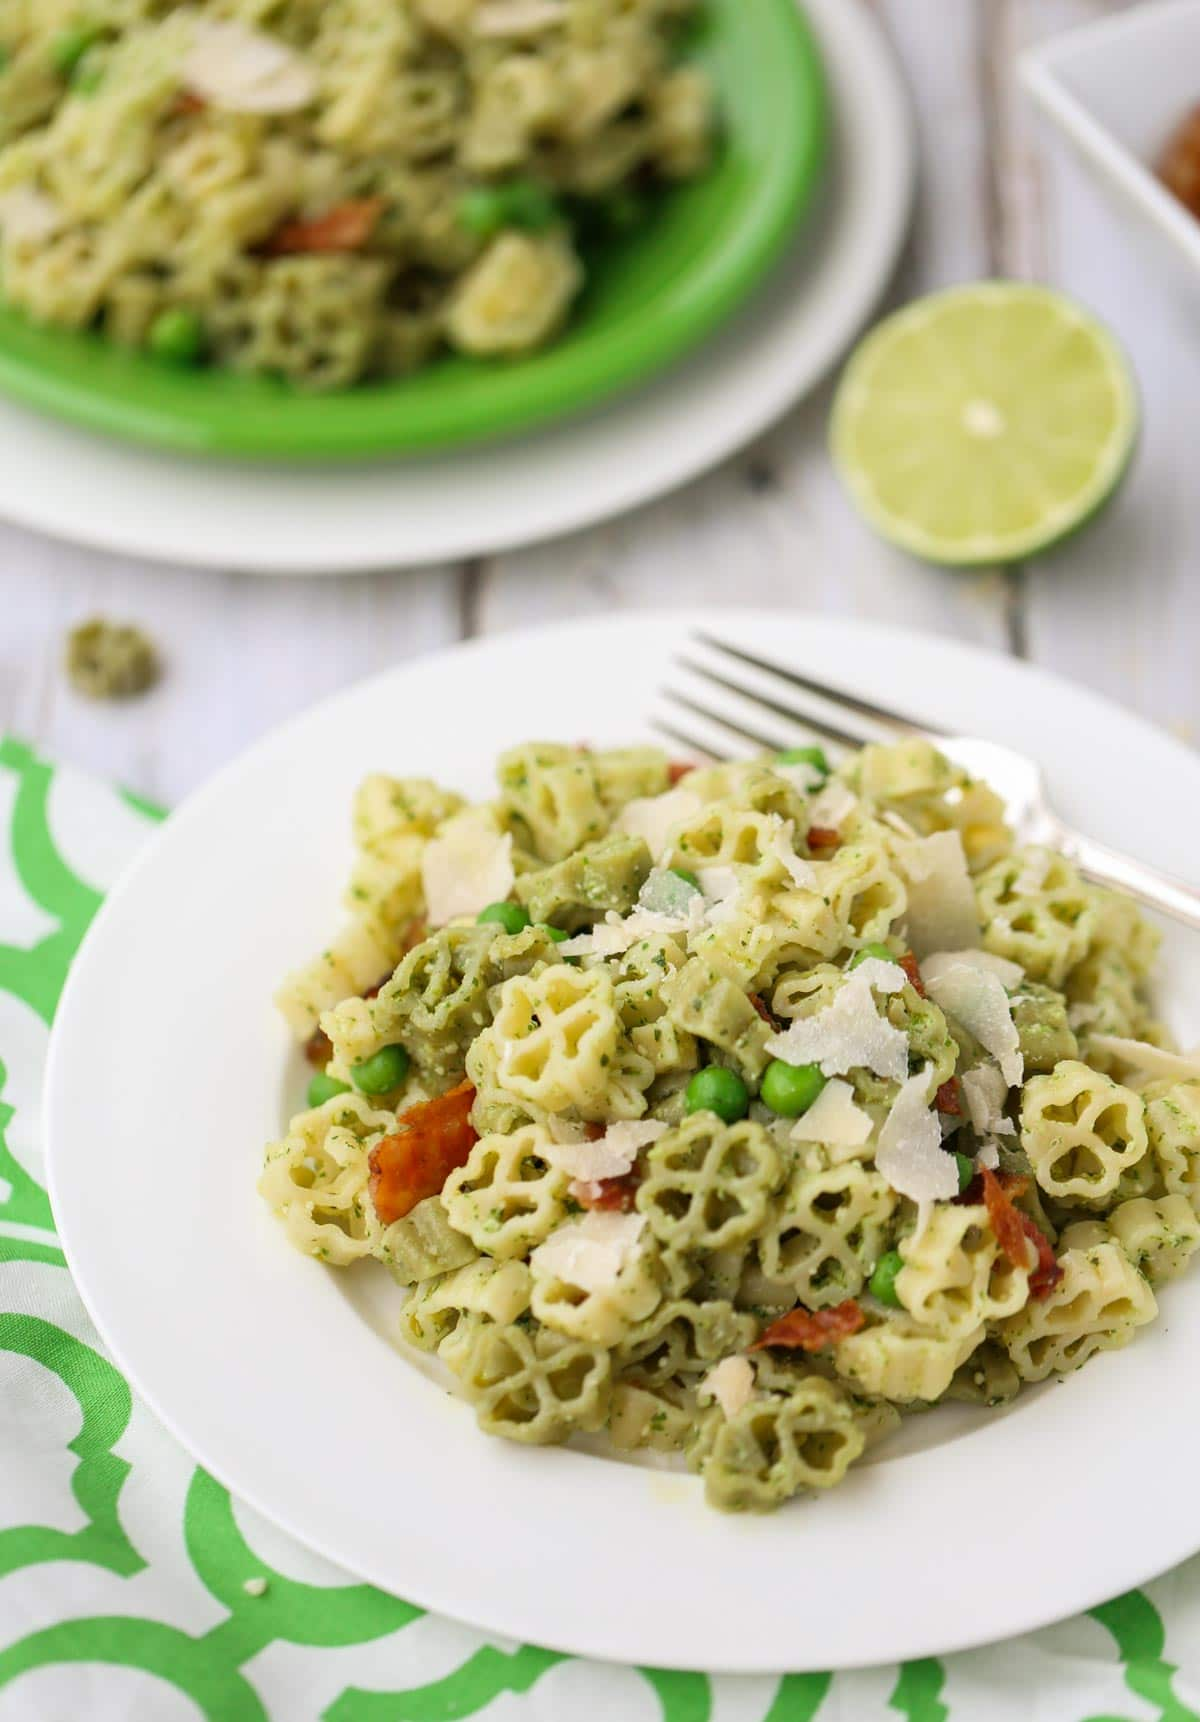 Arugula and Lime Pesto Pasta | A tangy and delicious combo for pesto! Add bacon, green peas, and make it your own! Yum! | WorldofPastabilities.com